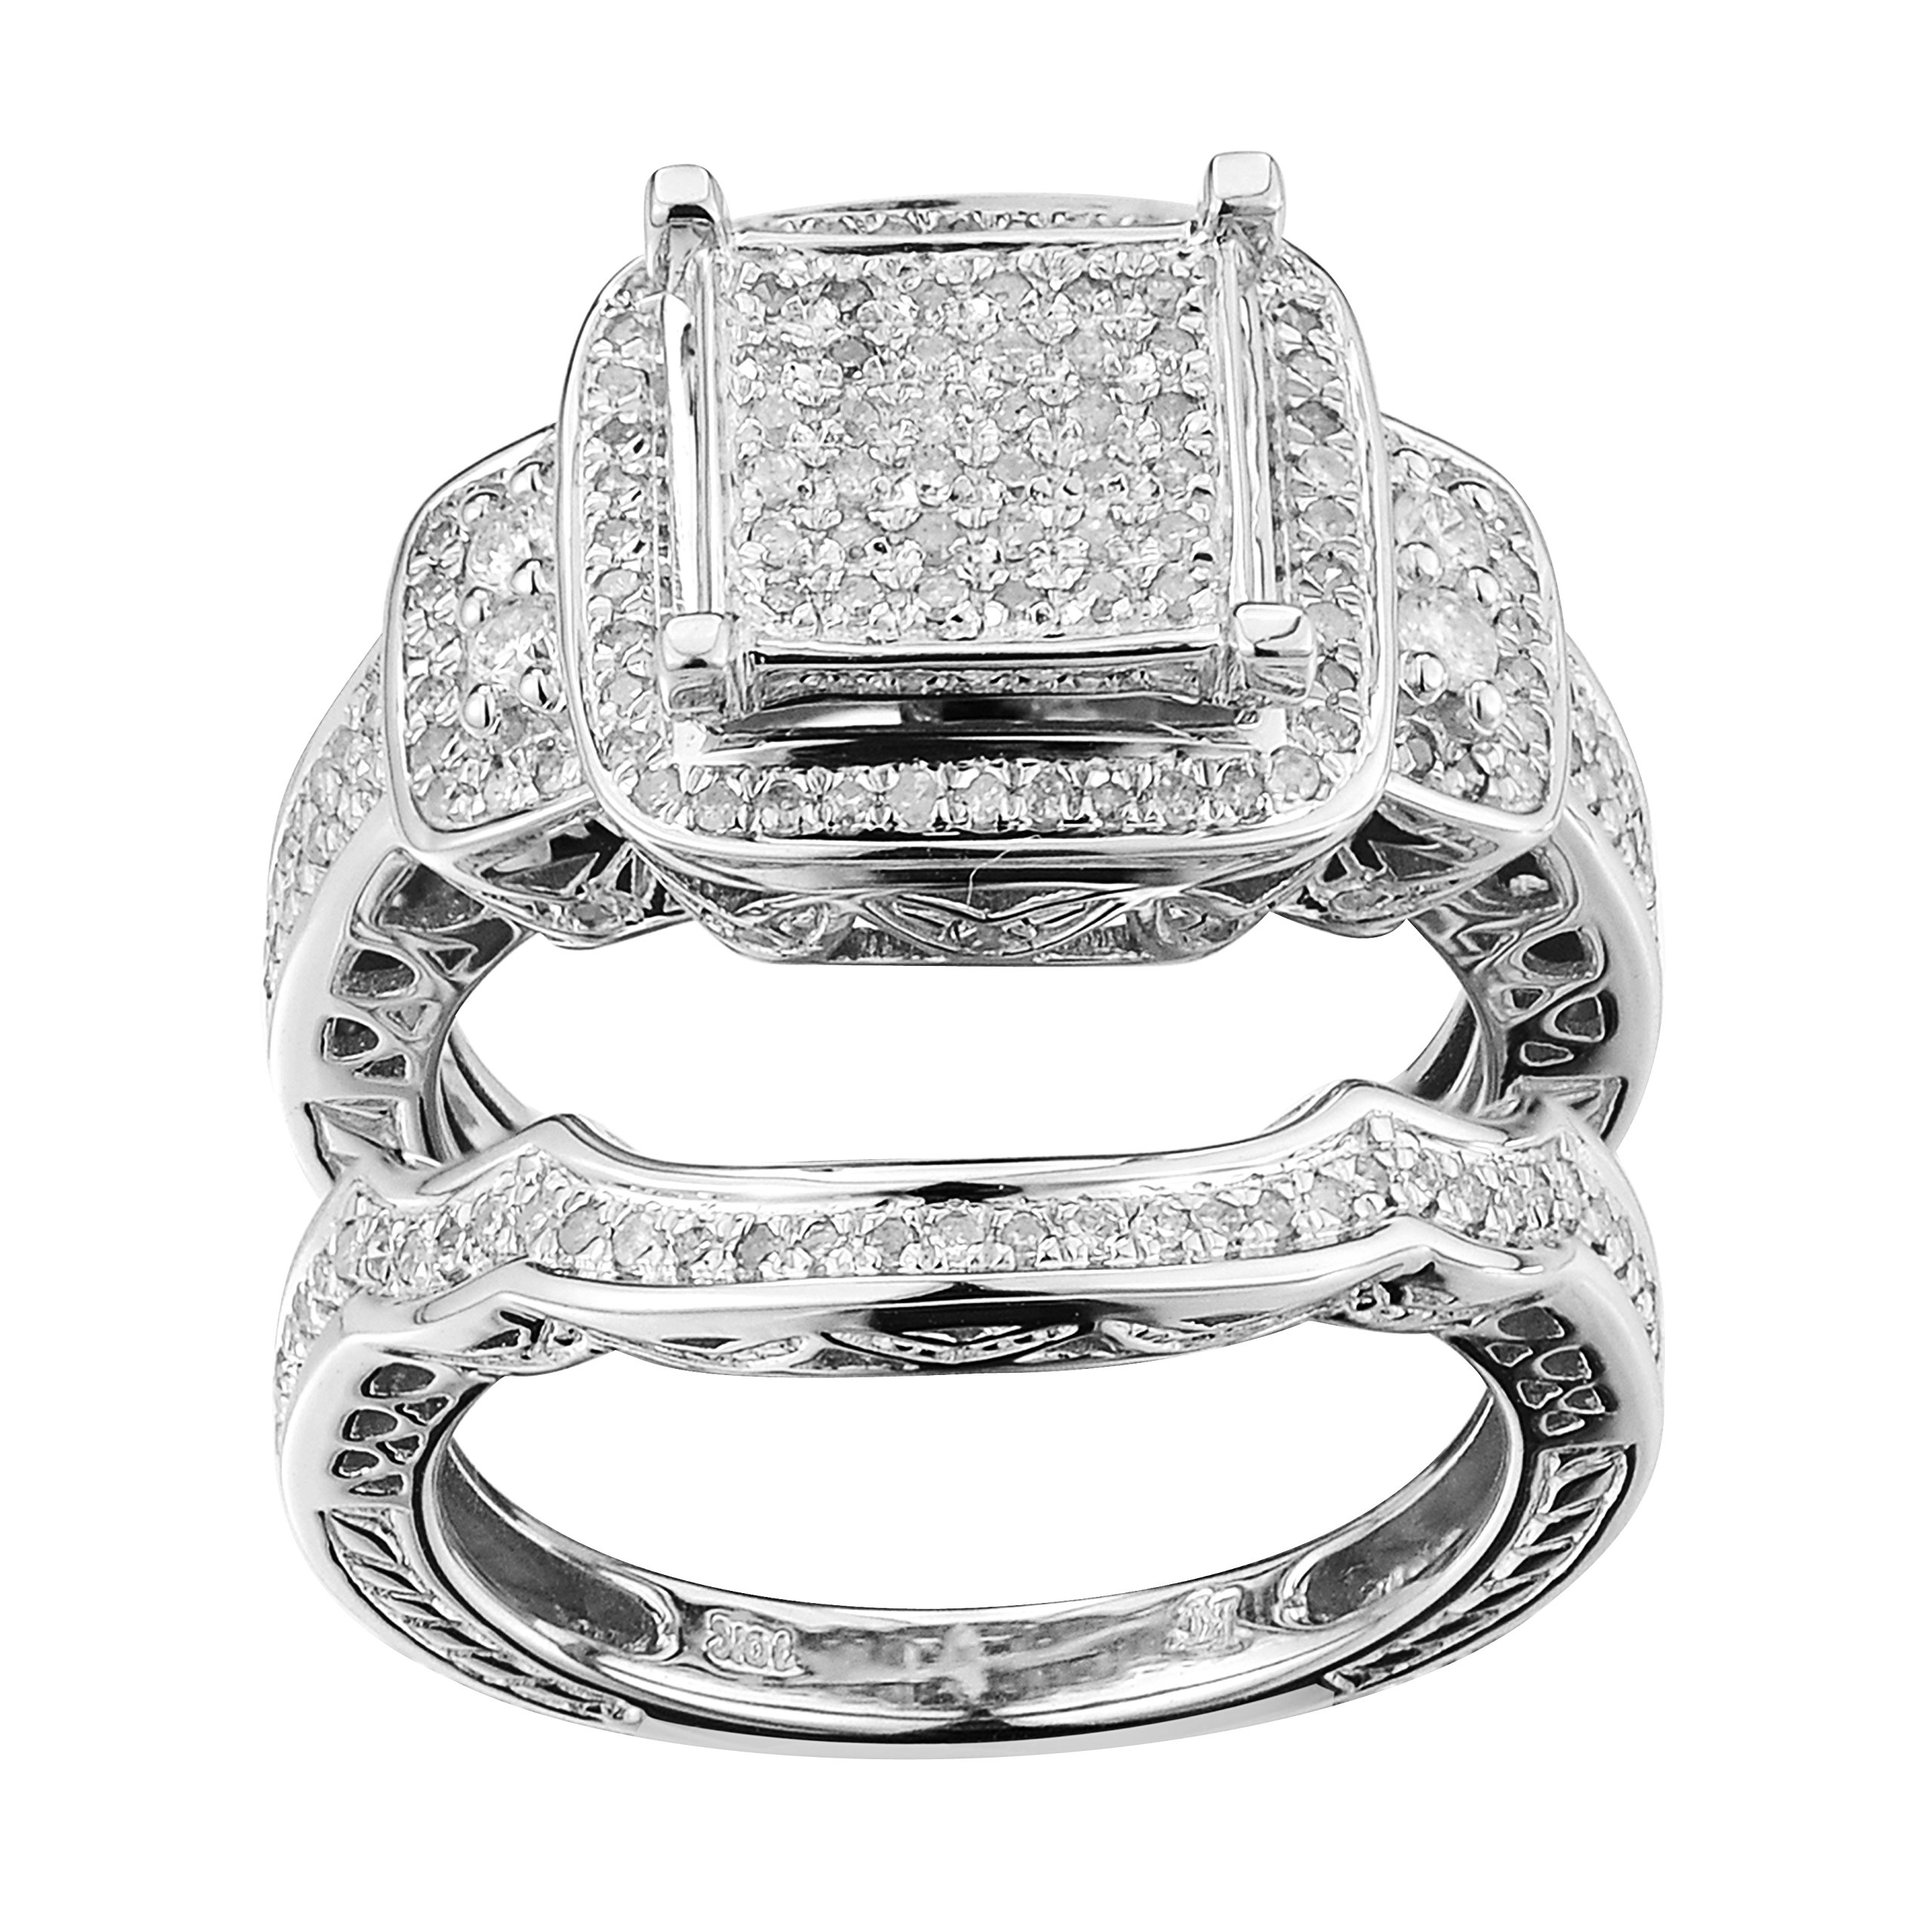 0.46 Carat (ctw) Sterling Silver Round White Diamond Womens Micro Pave Engagement Ring Set 1/2 CT (5) by Top Gold & Diamond Jewelry (Image #1)